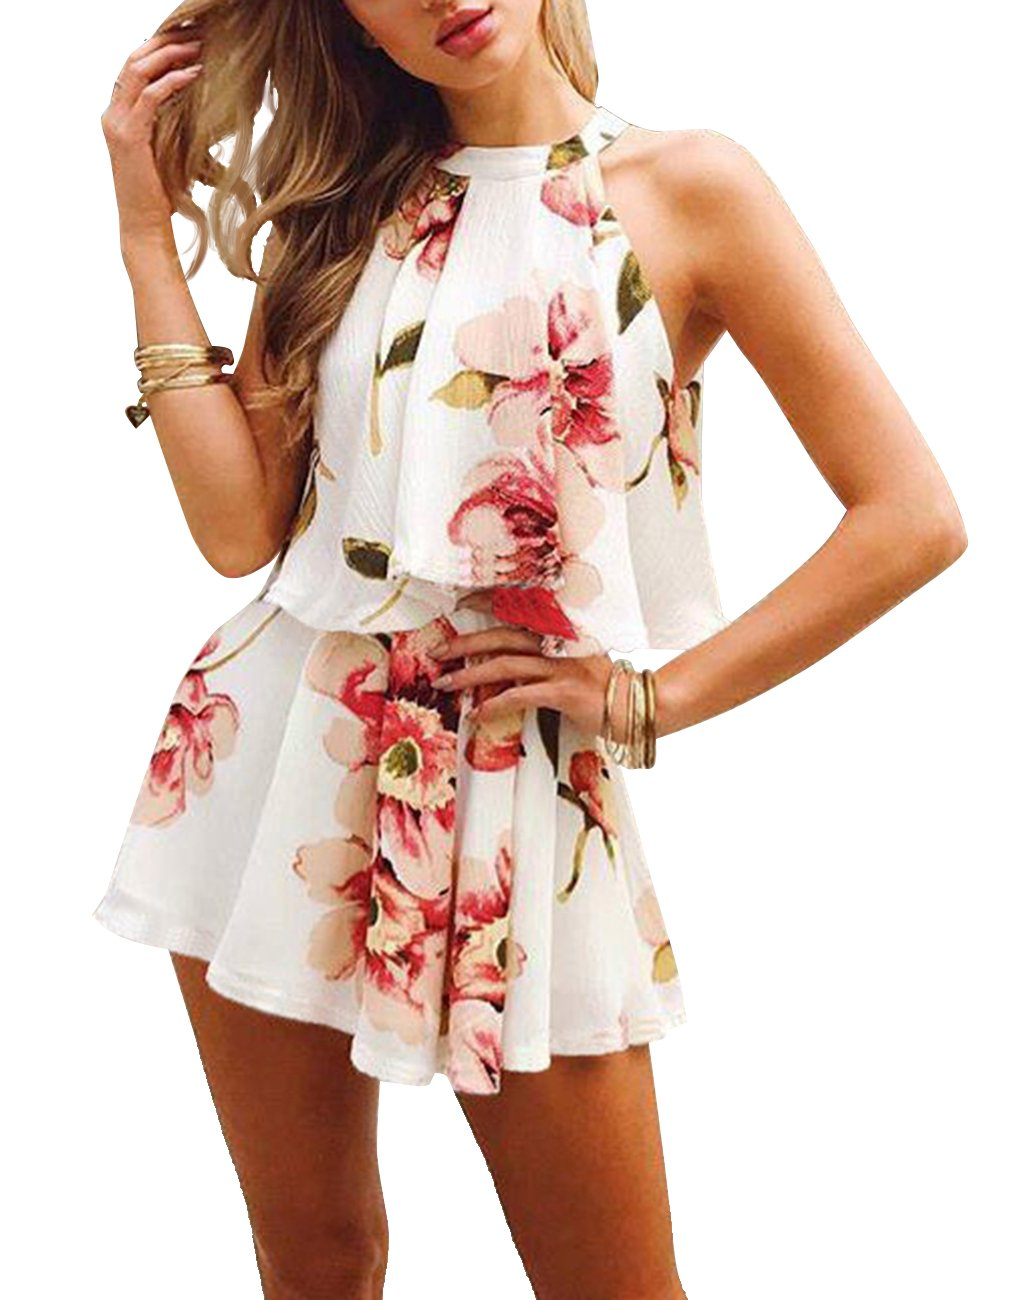 Omerker Women's Floral Sleeveless Romper Two Piece Summer Outfits Playsuit Short Jumpsuit